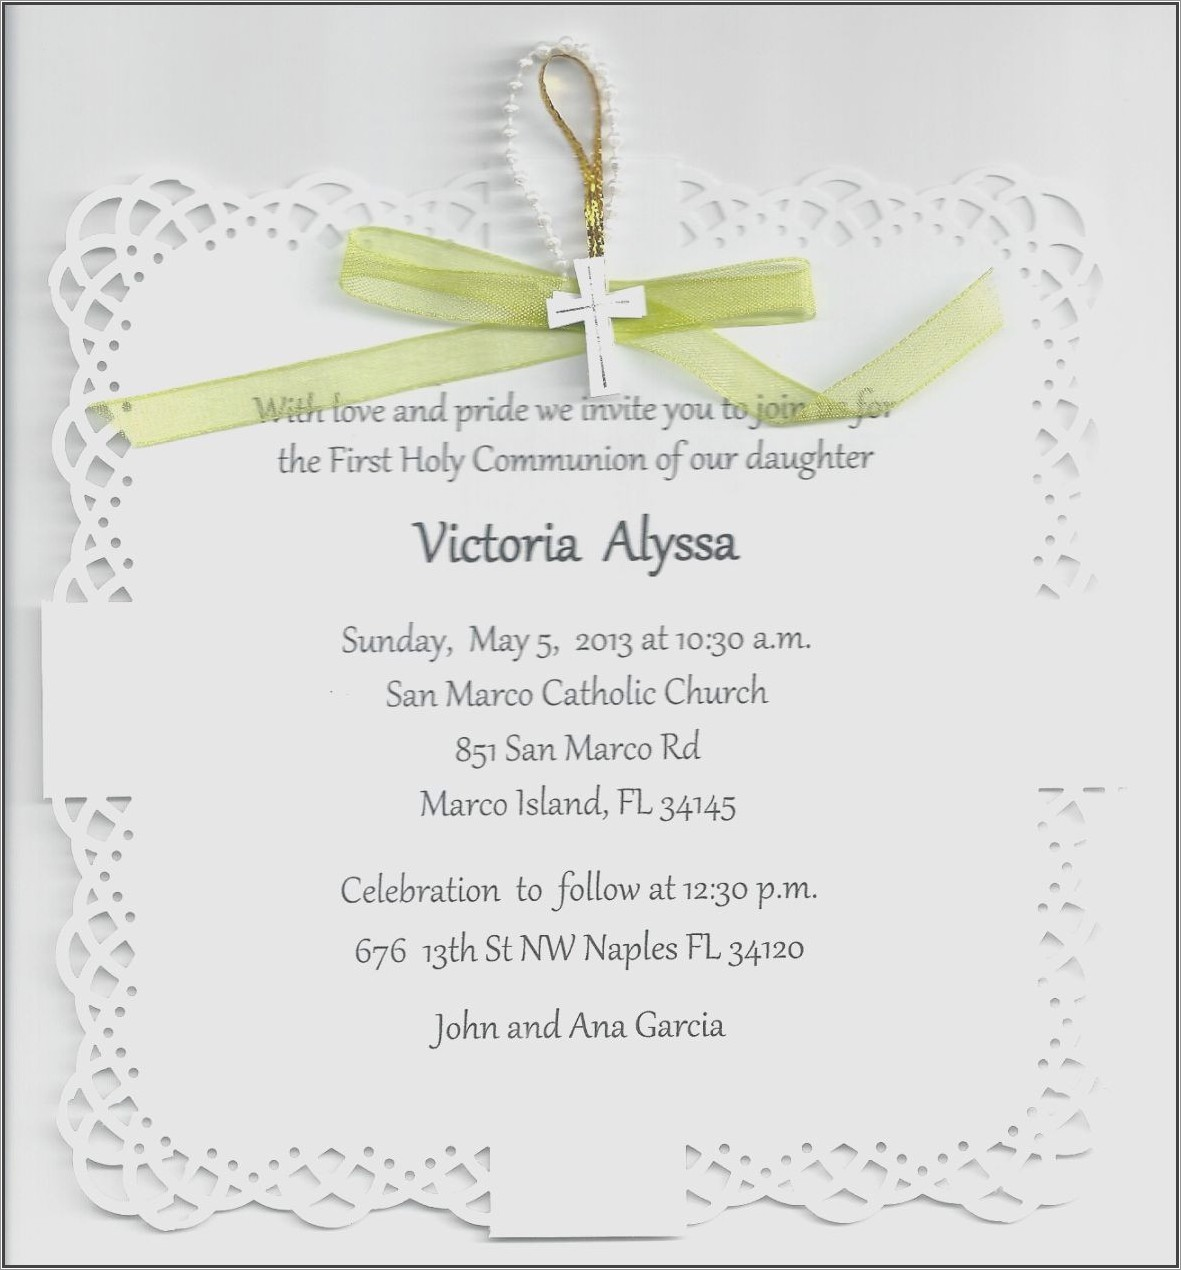 Holy Communion Invitation Wording In Tamil